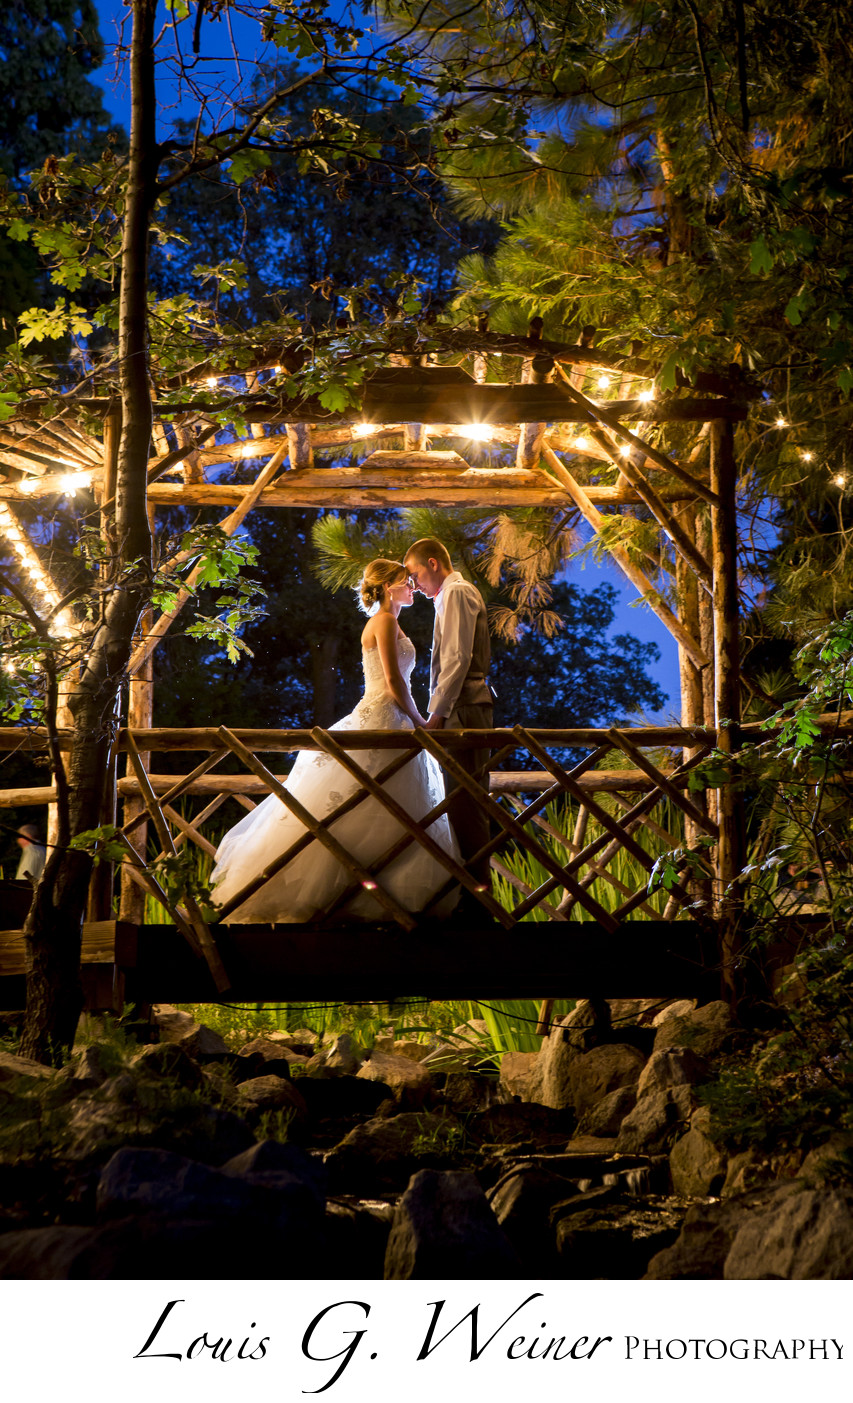 Mountain forest wedding night photography , Louis G Weiner